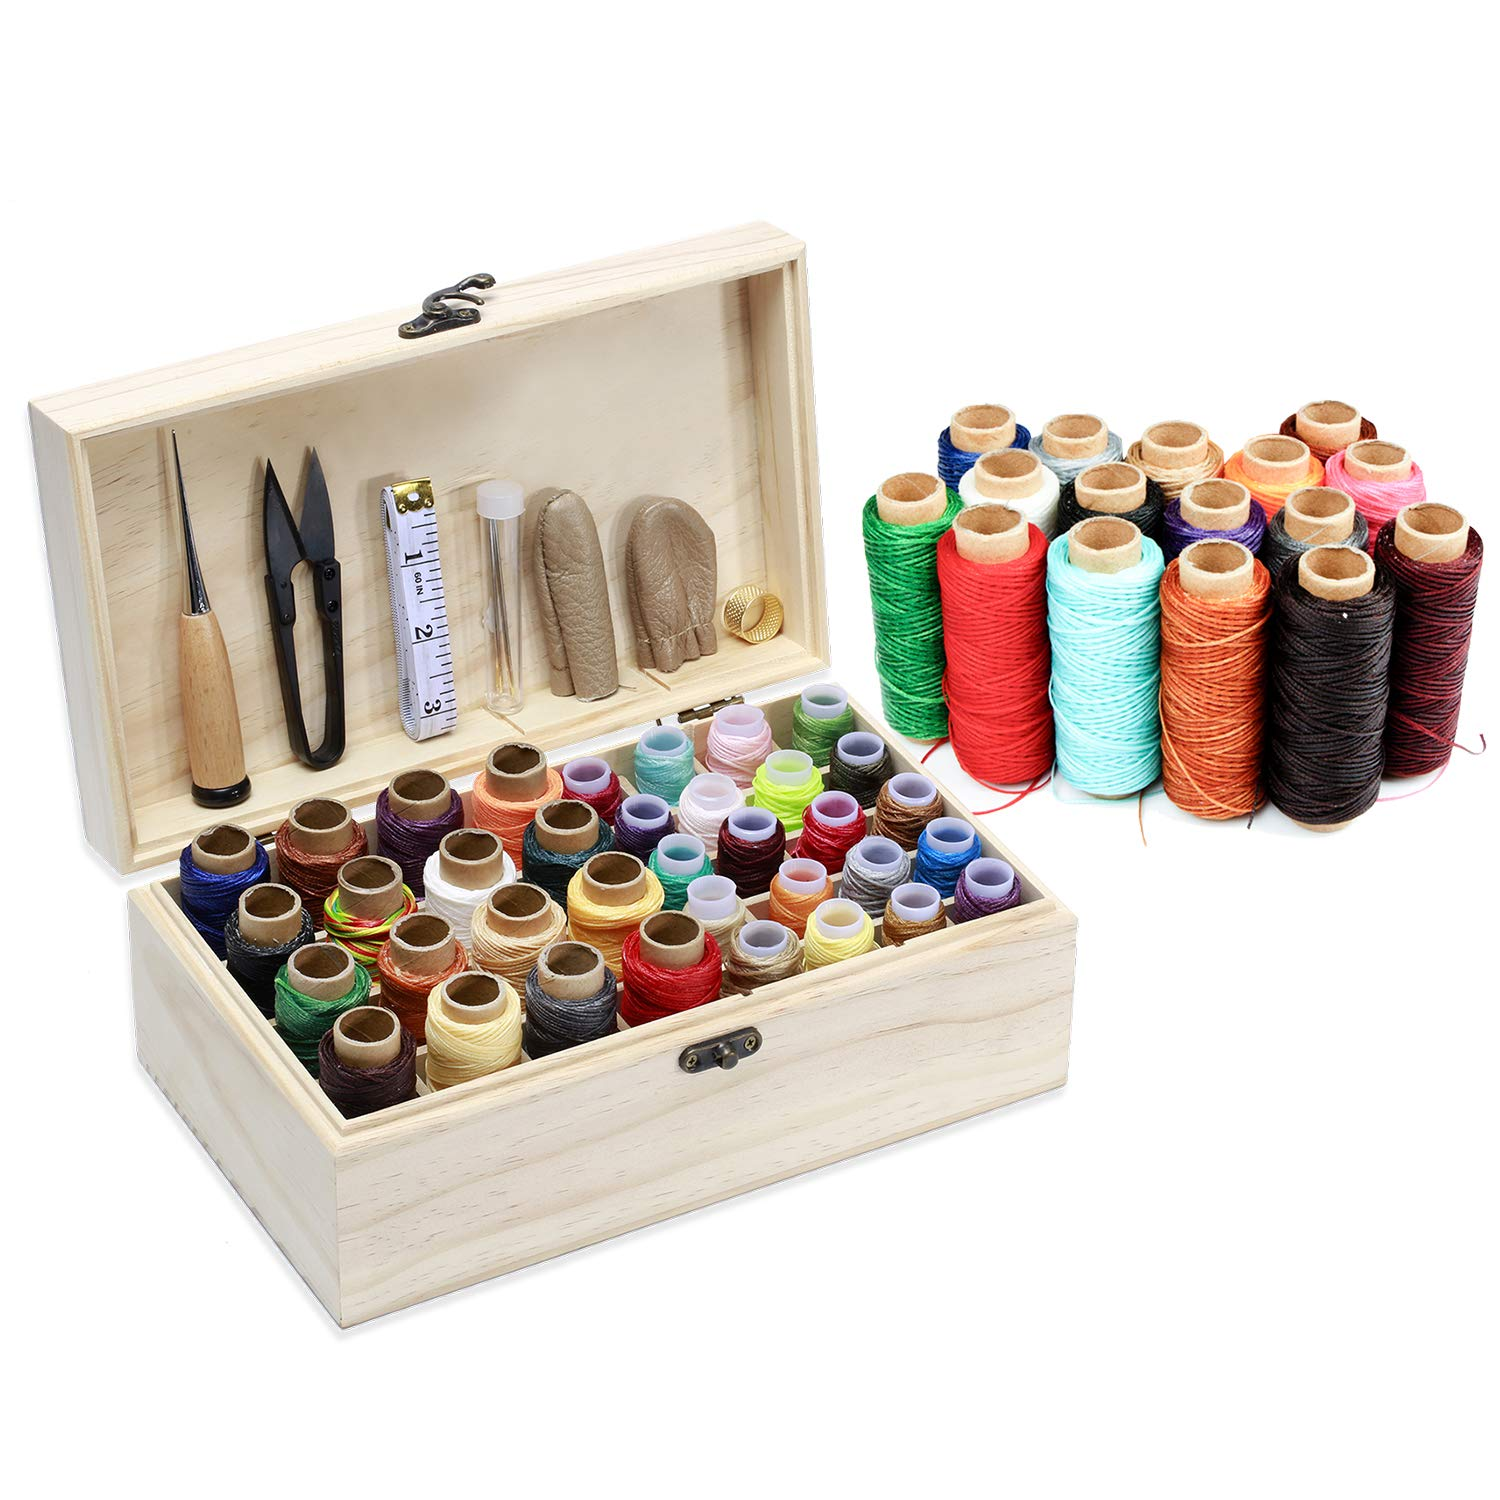 Mayboos 36 Colors Leather Waxed Thread, Leather Sewing Thread in a Wooden Box Leather Needle and Thread 52Pcs Leather Craft Hand Tools Kit for DIY Bookbinding Crafts and Sewing Supplies